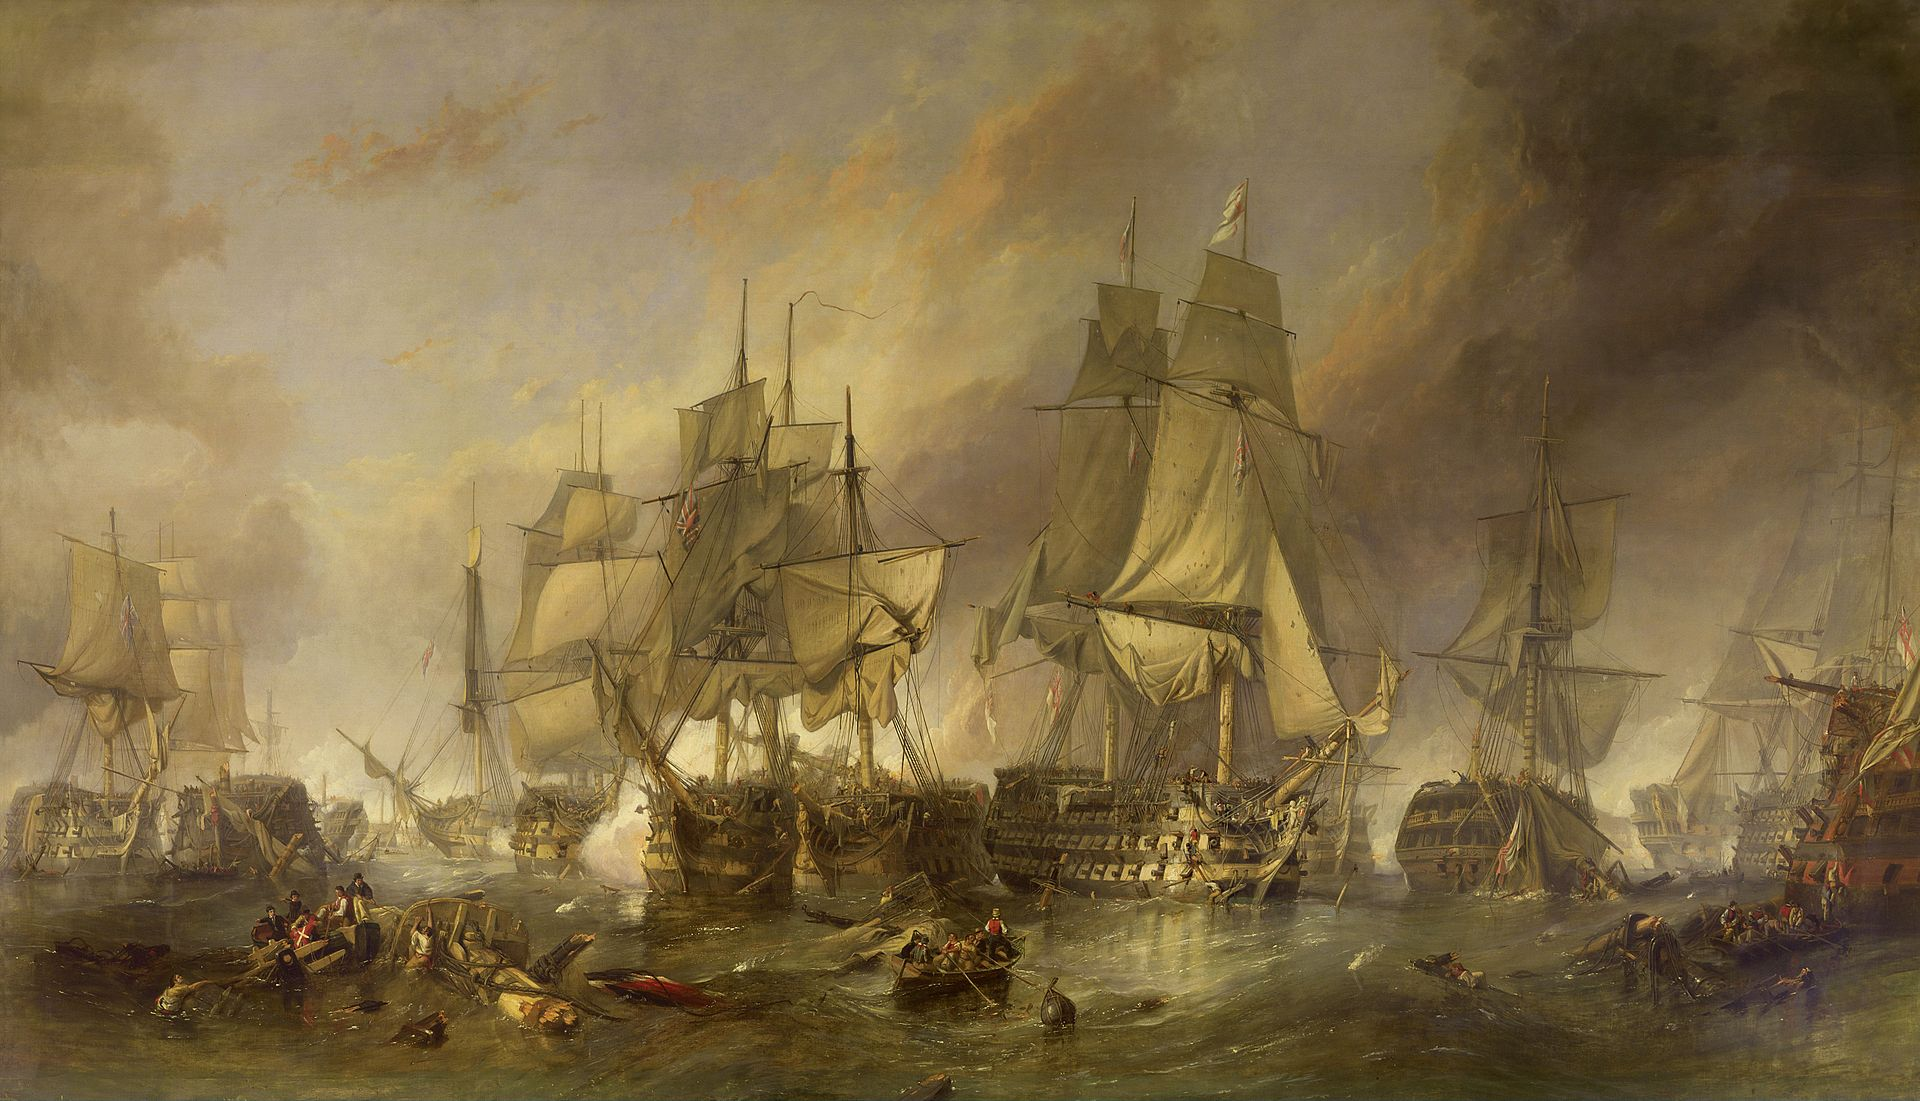 The_Battle_of_Trafalgar_by_William_Clark